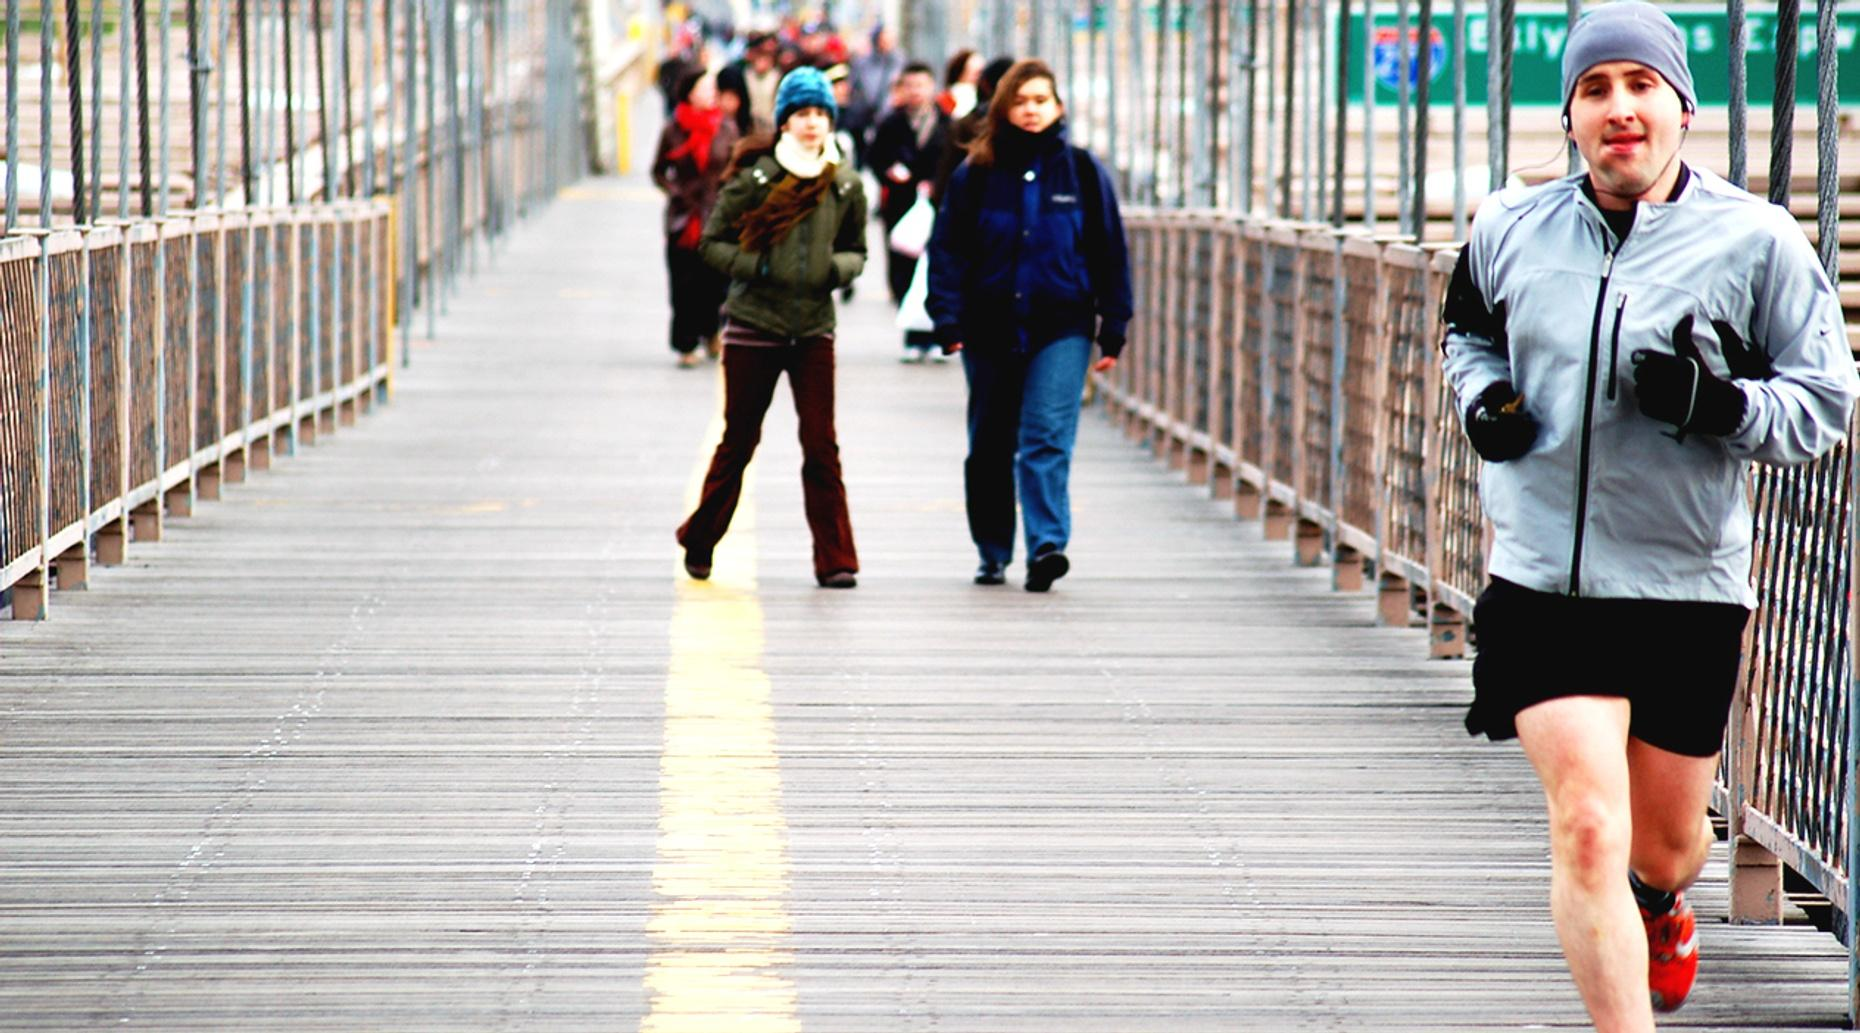 Ten-Mile Personalized Running Tour in New York City